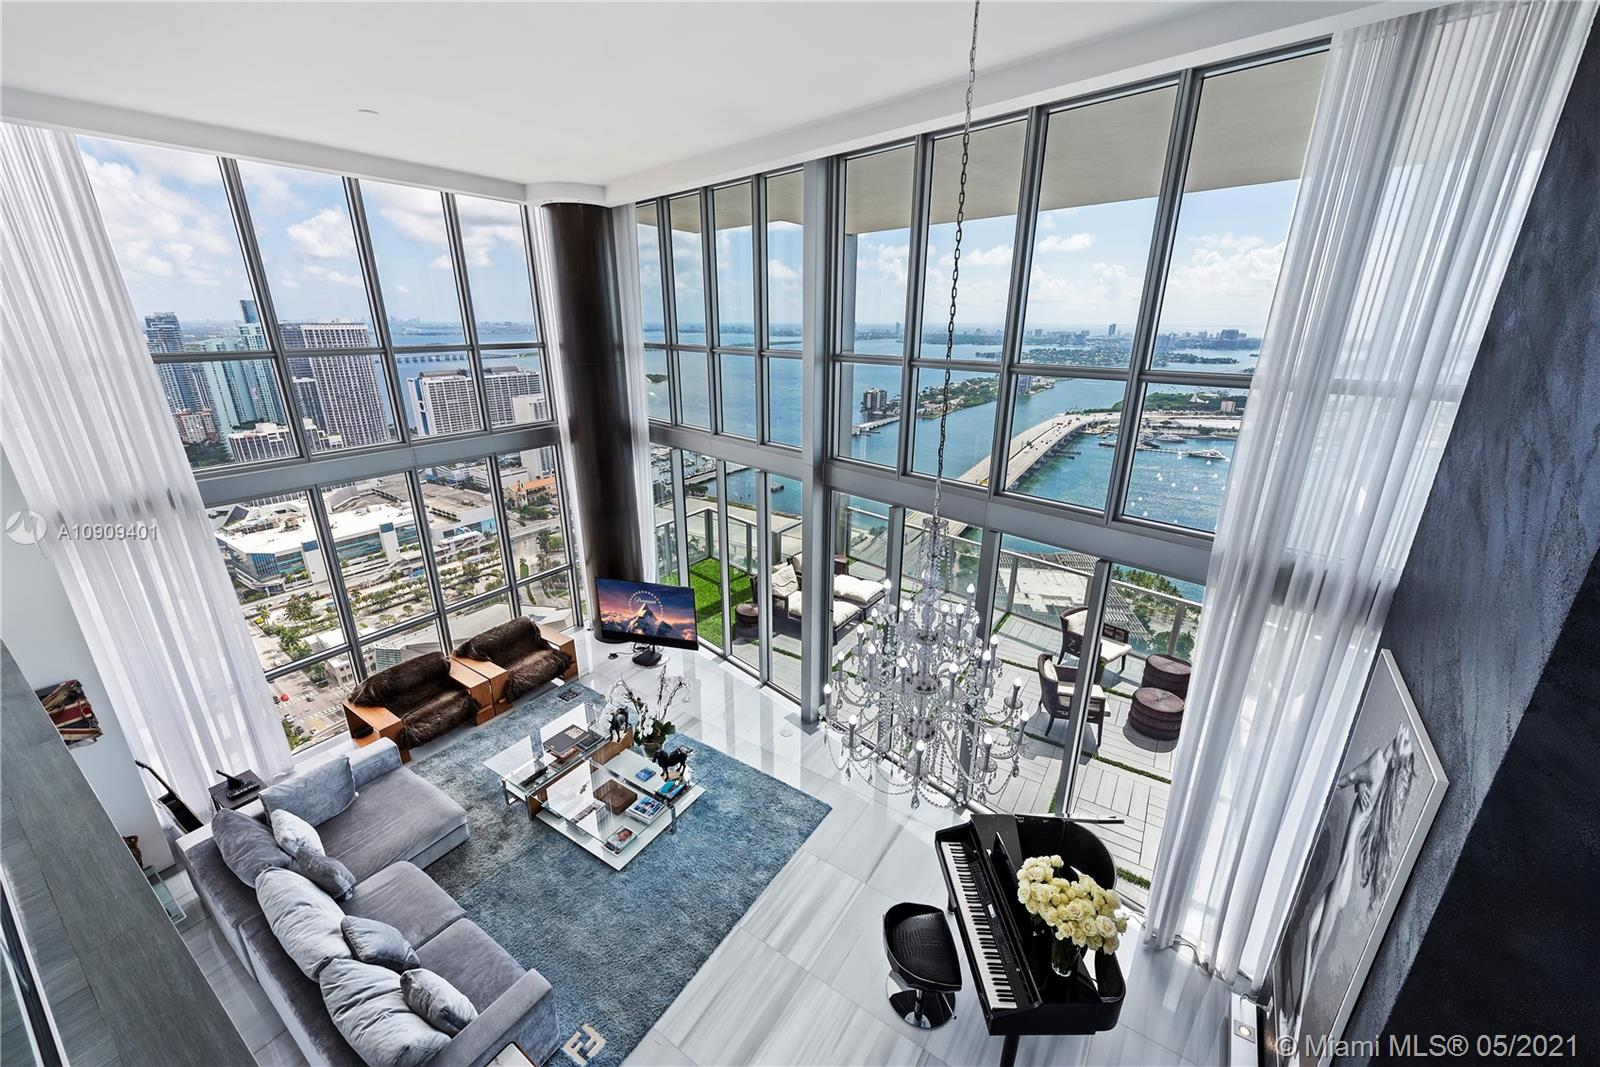 Majestic & unique combined condo units in the hottest location in Downtown Miami. No expense spared in this nearly 7,000 SF luxury property in the iconic Marquis Miami Residence. A total of 3 combined residences, this corner condo features 6 beds, 6 baths & 2 half baths, movie theater room, office, two laundry rooms, oversized terrace space and 4 assigned garage spaces. Master bedroom features a double shower, jacuzzi & sauna. Savant home automation system with Sonos audio throughout and fully electric window treatments. The main event is the unobstructed breathtaking views of Biscayne Bay, Atlantic Ocean, Miami Beach & Downtown Miami. Located minutes to sports & cultural venues. 5-Star Marquis amenities with 24-security, brand new gym, yoga studio, kid's playground and world-class pools.